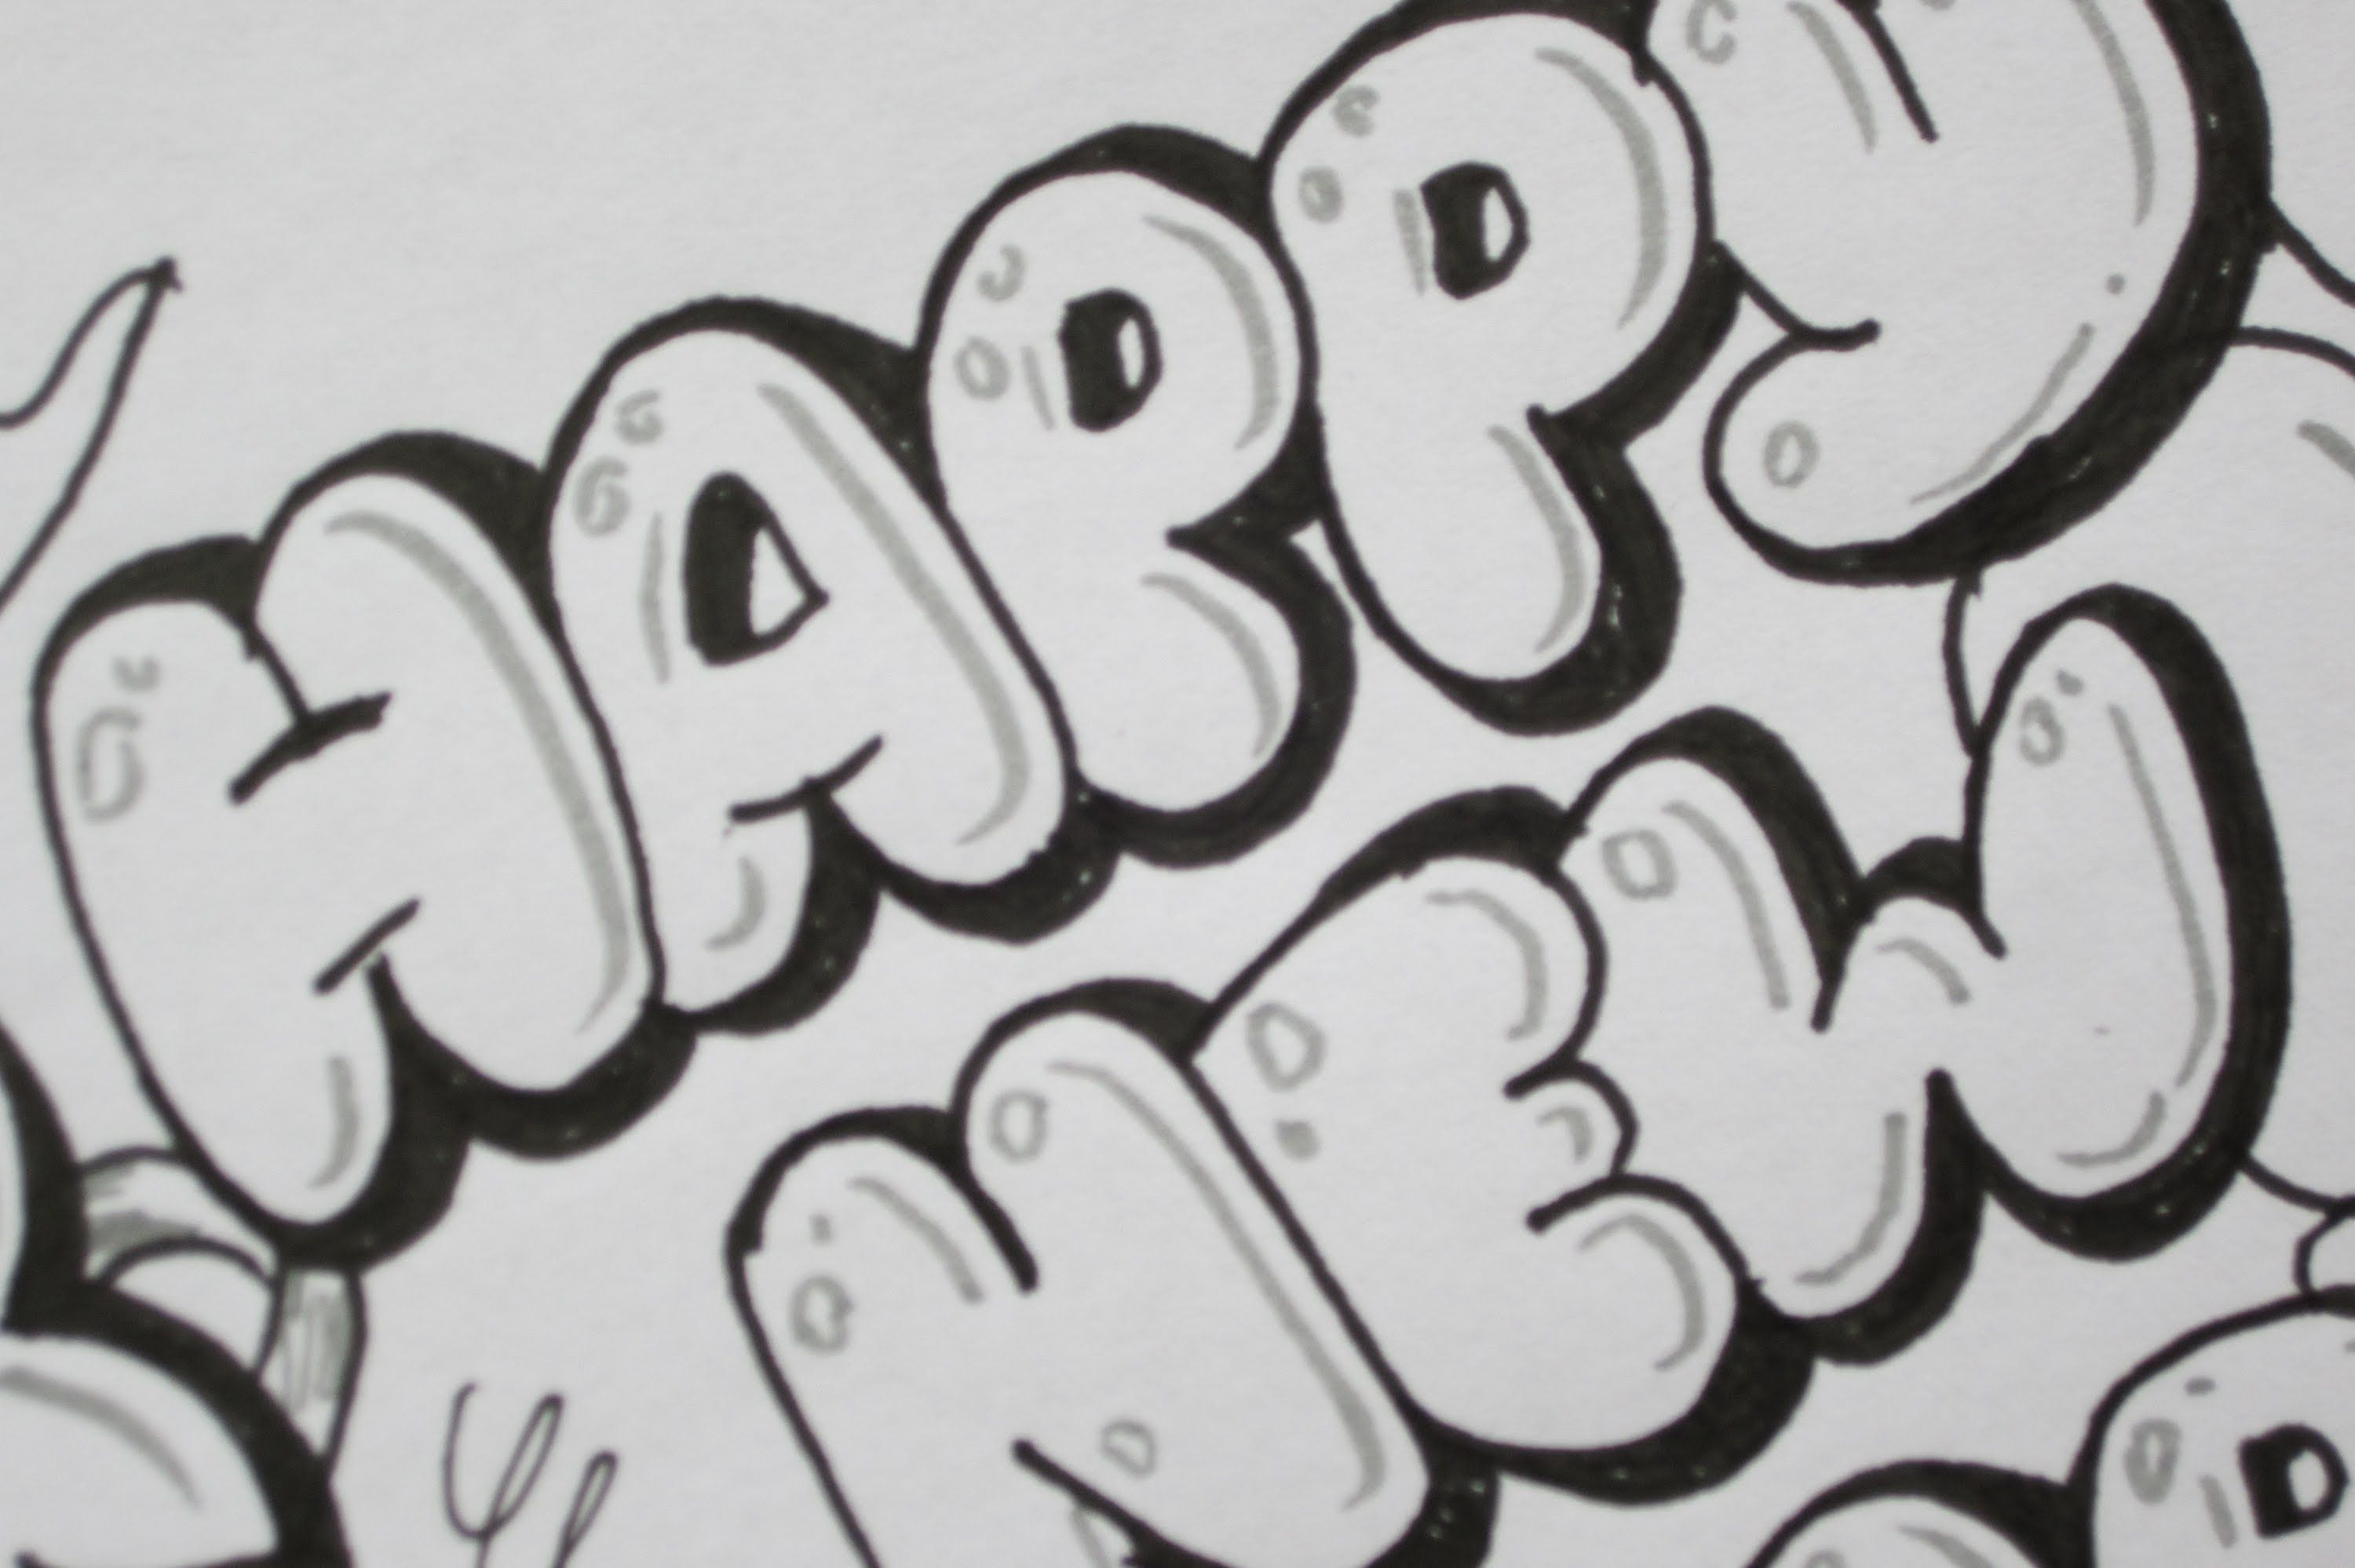 How To Write Happy New Year In Bubble Letters Easy Drawings Happy New Year Letter Lettering